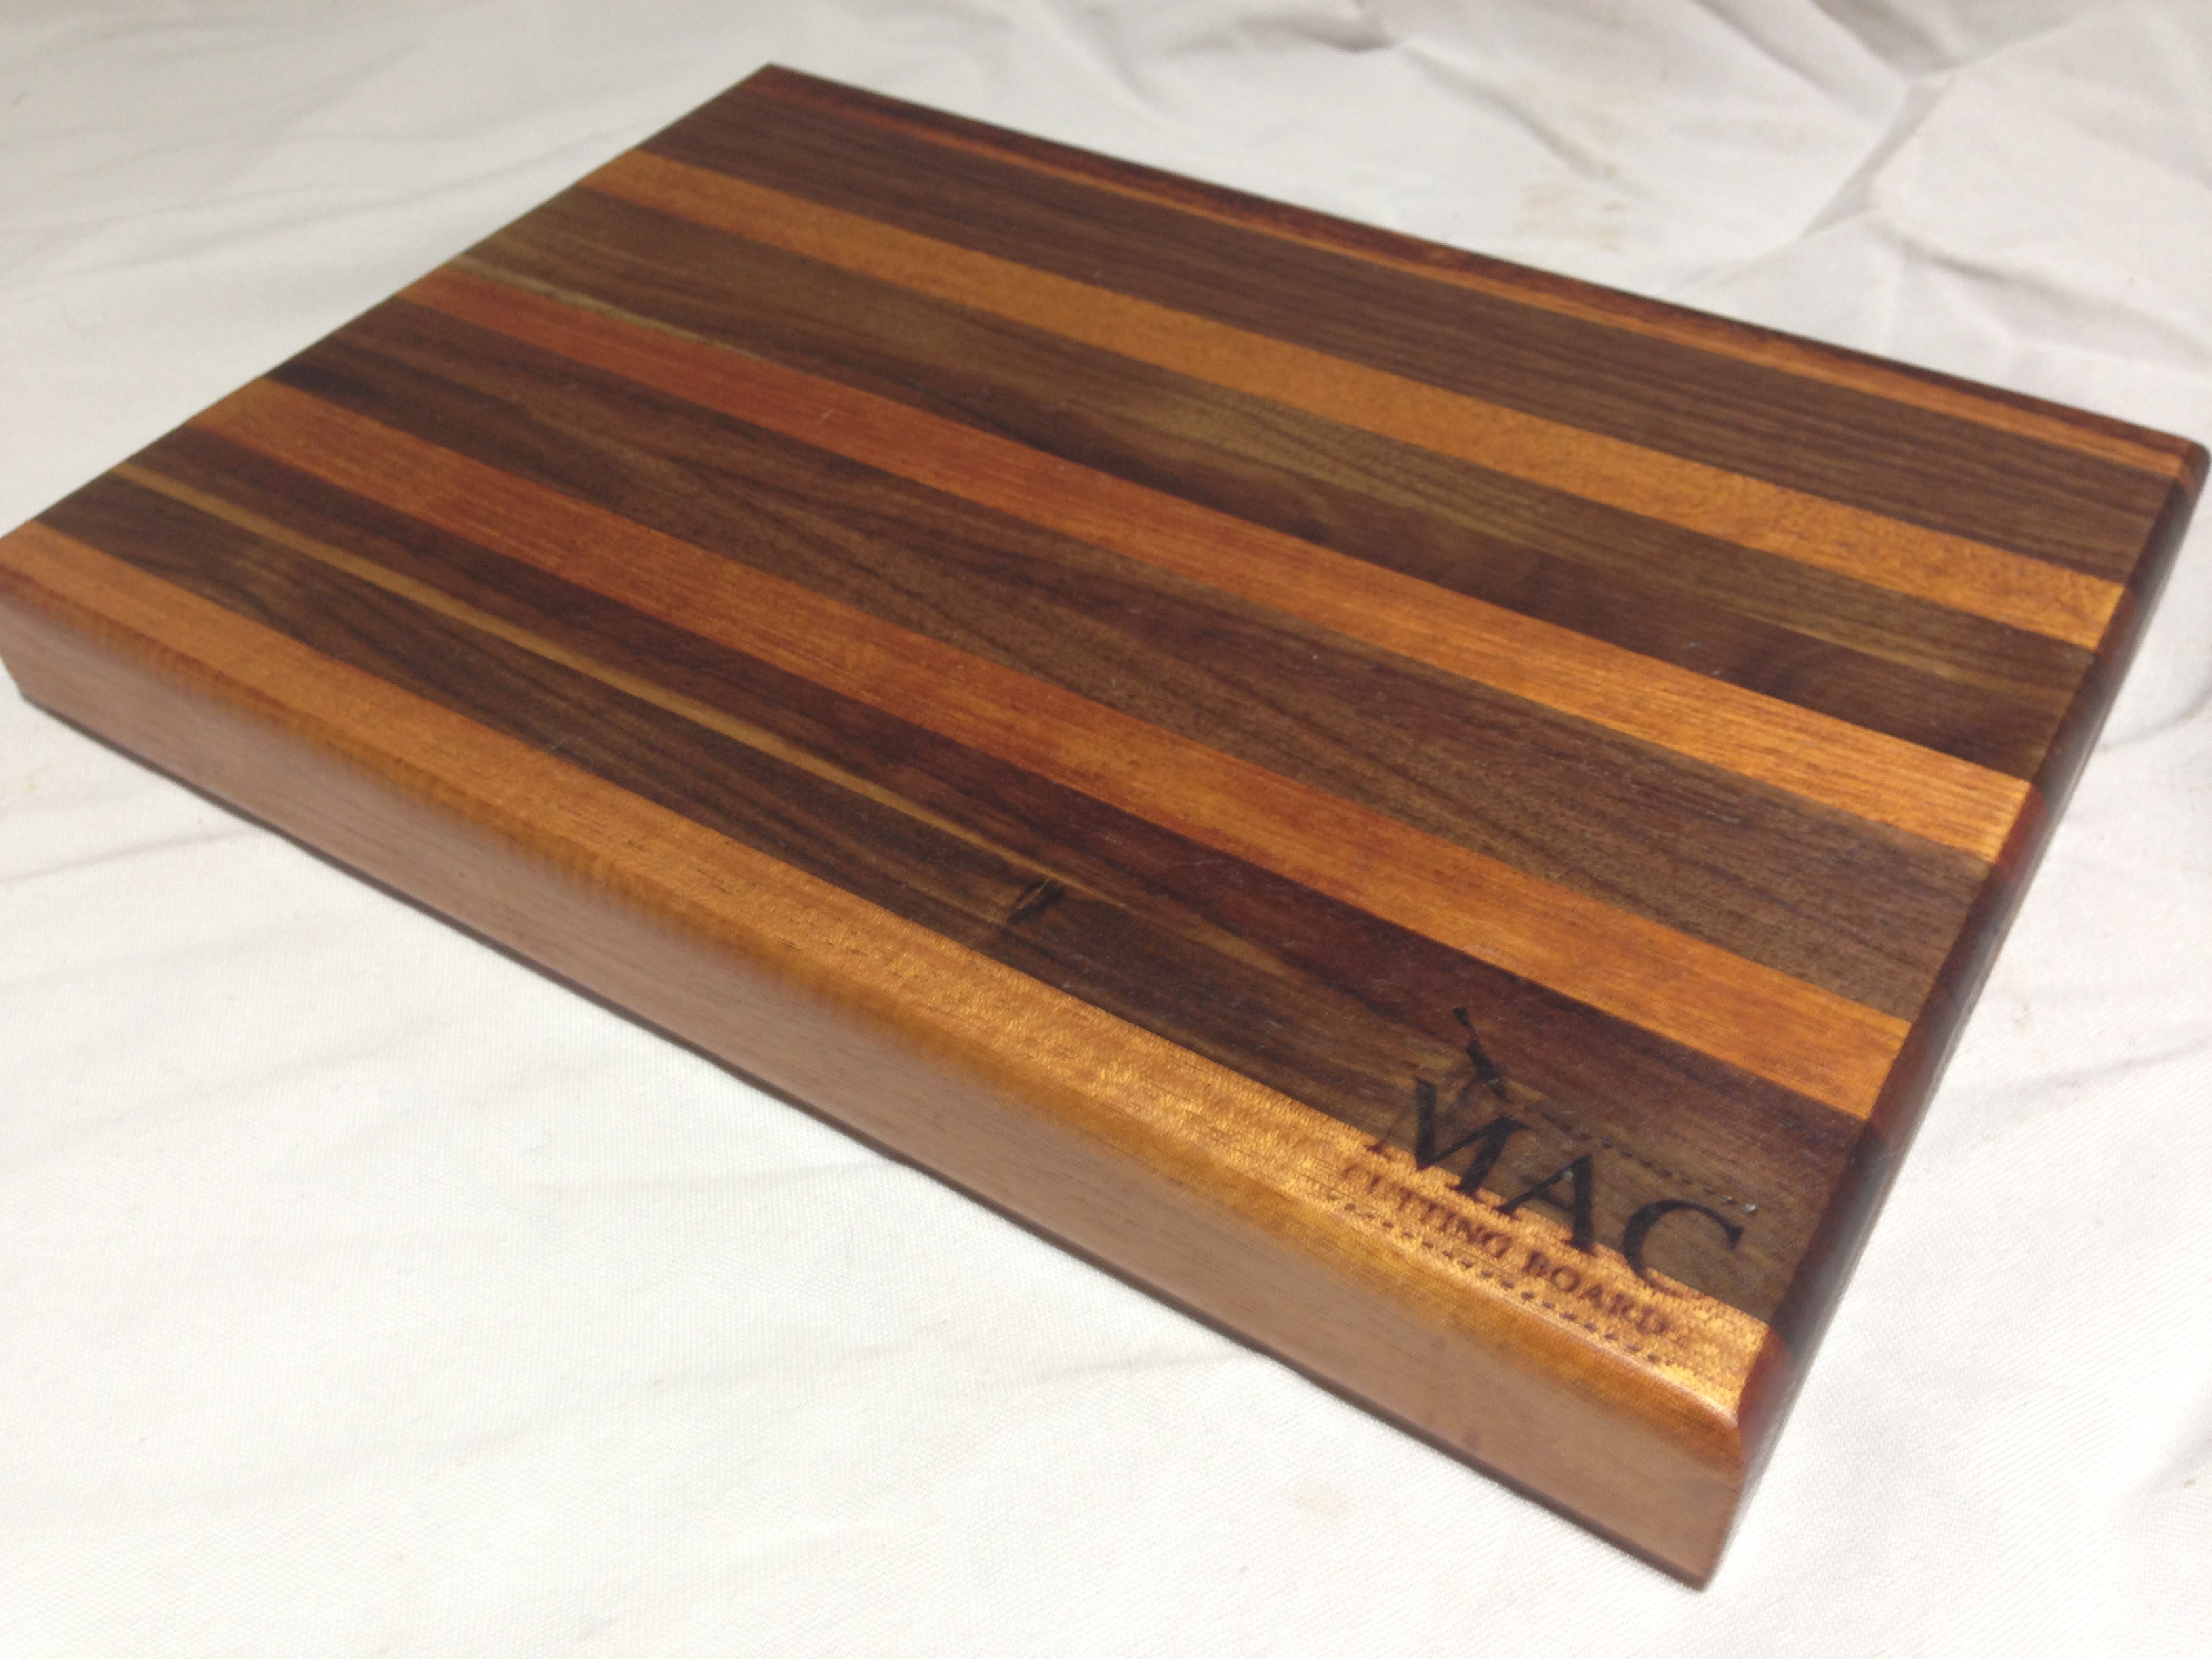 wood cutting board mac cutting boards online store powered by storenvy. Black Bedroom Furniture Sets. Home Design Ideas